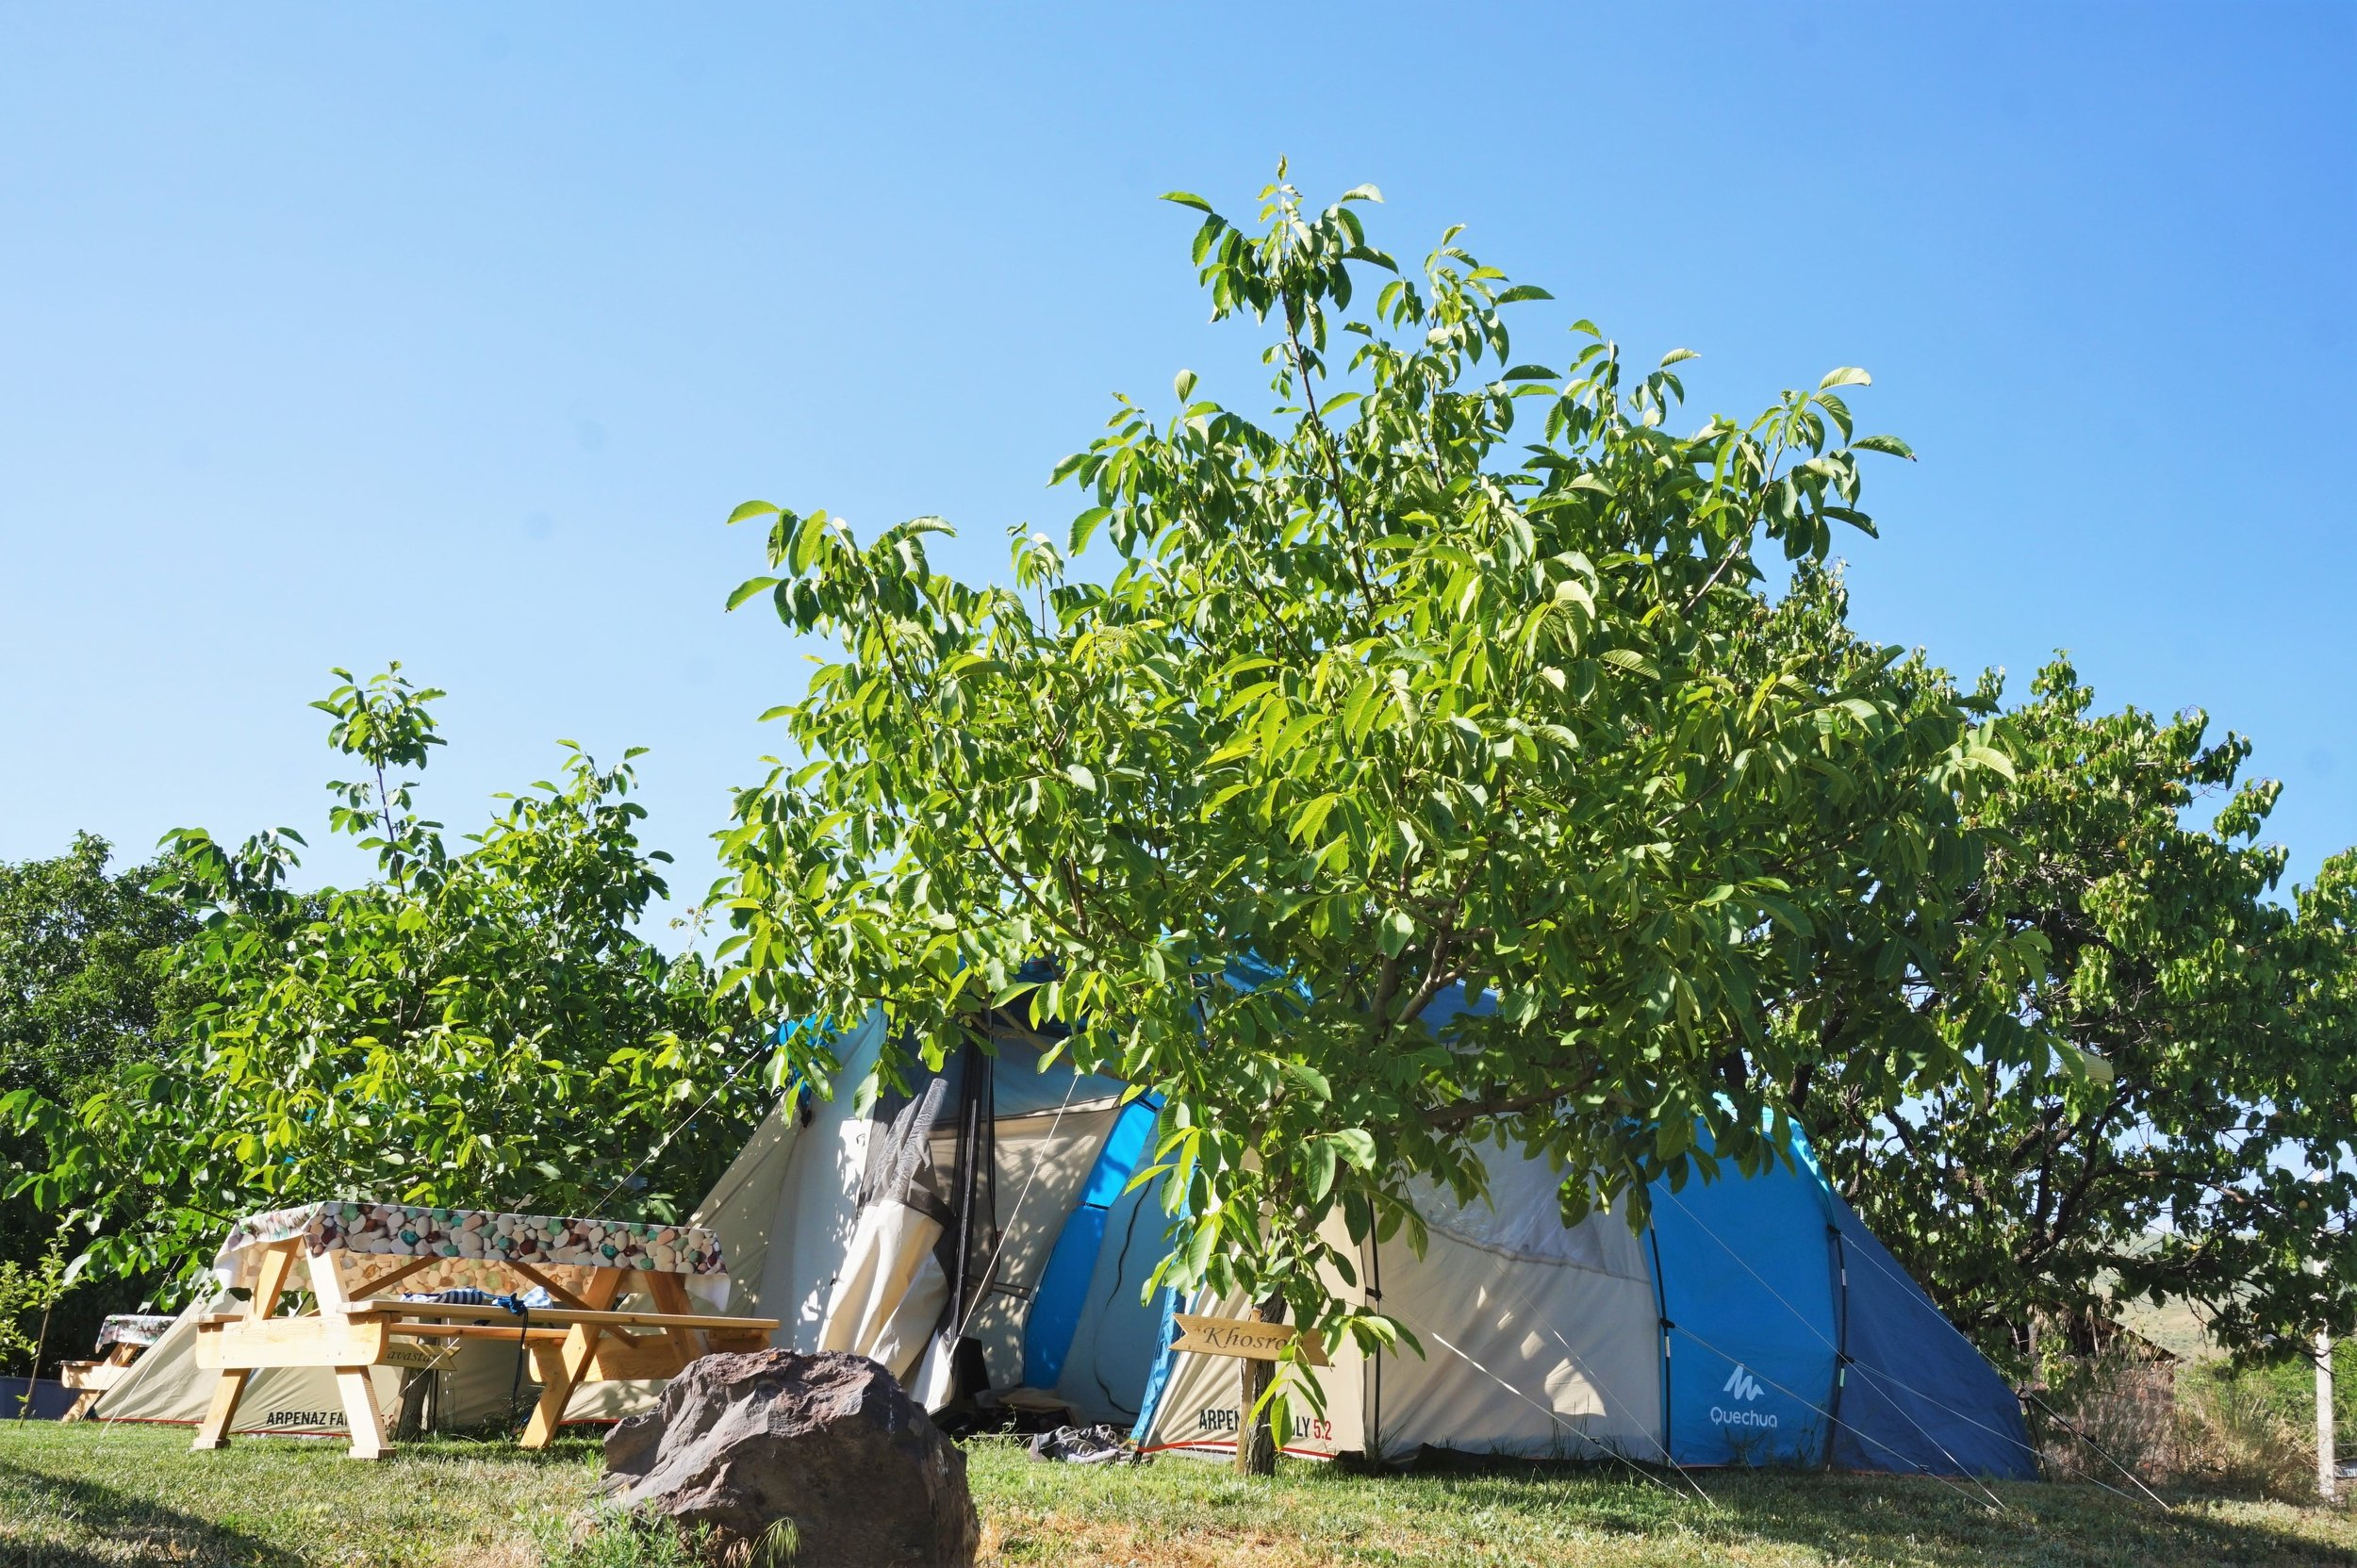 Campground in Gokht. Make it your base when you explore Garni and Geghard.